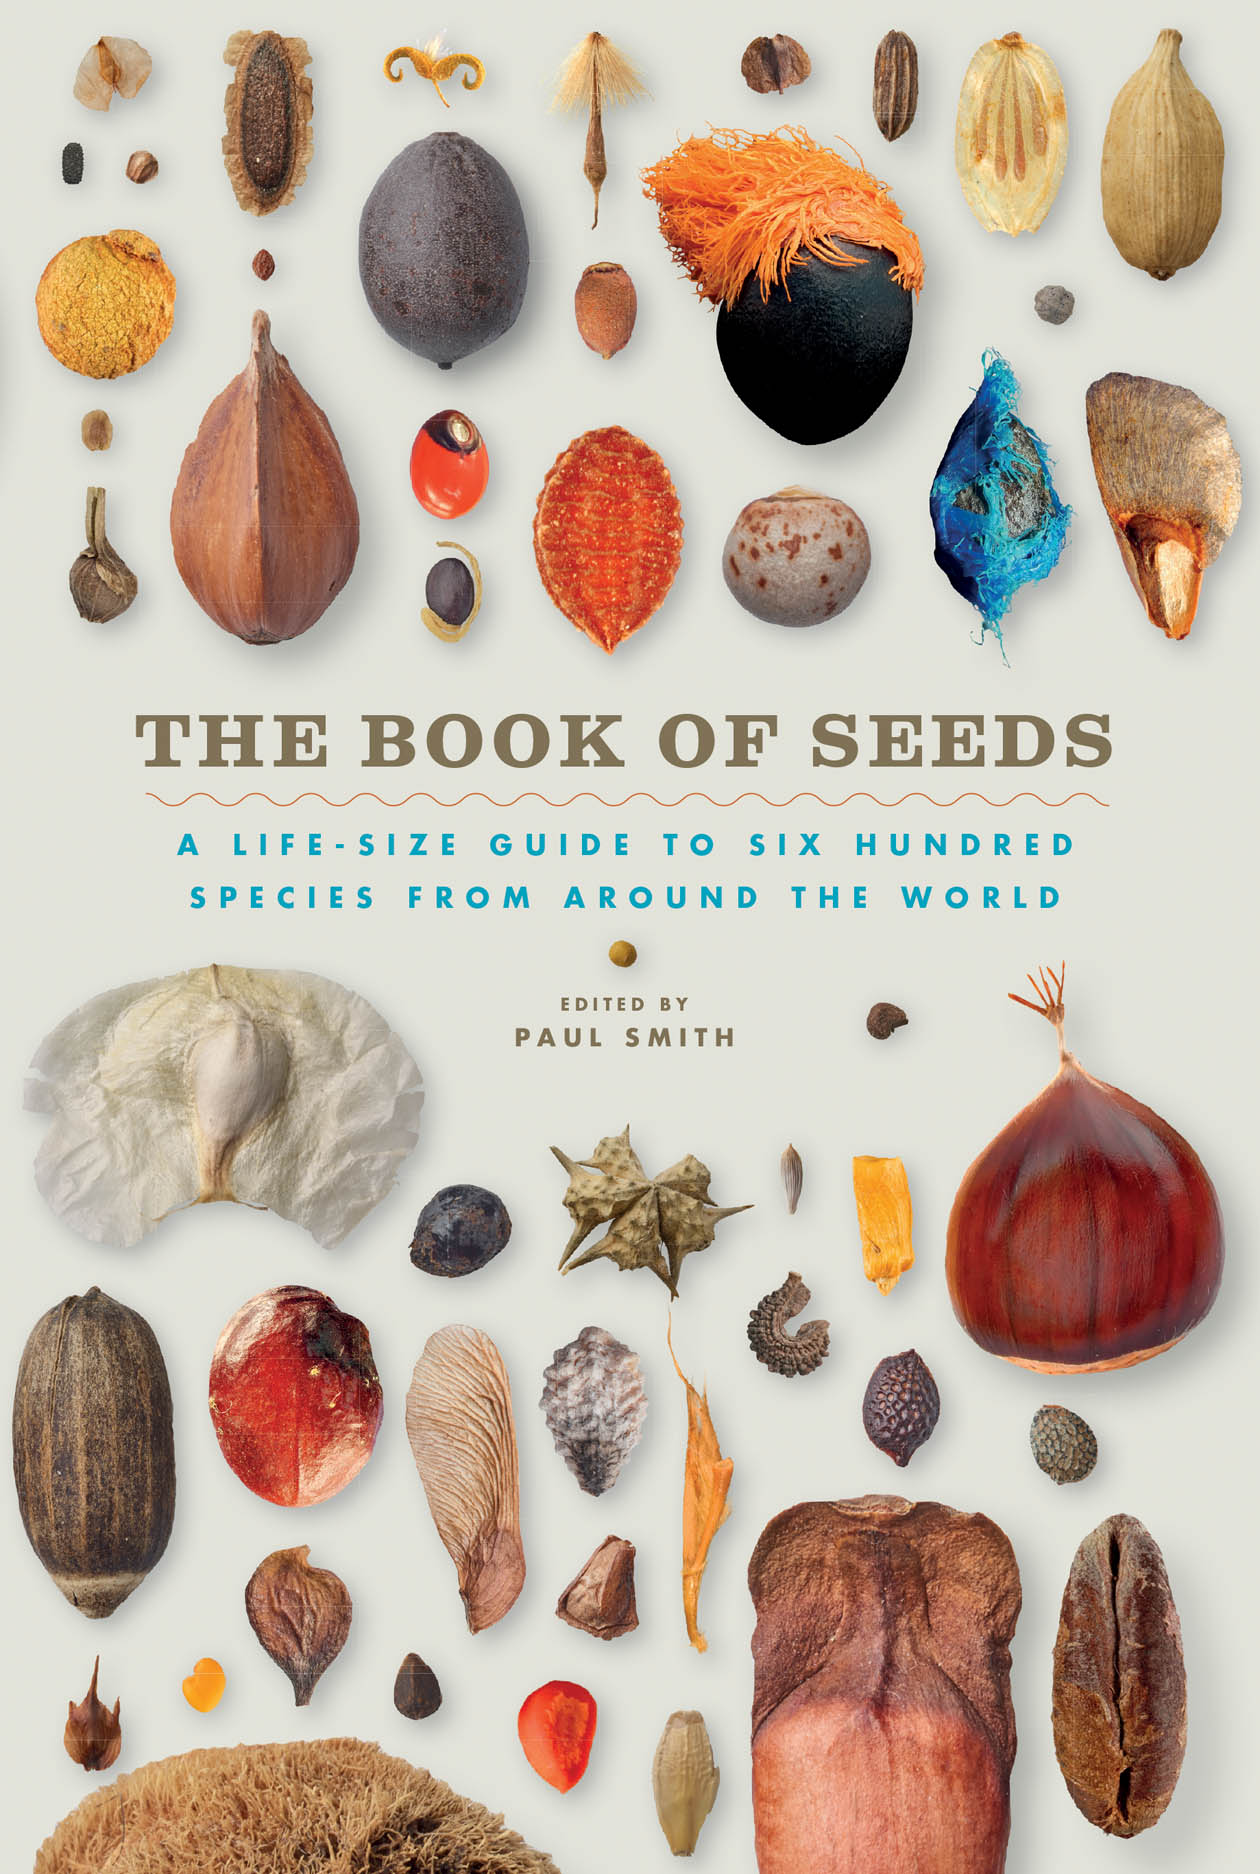 Book of Seeds featured on the Science Friday blog